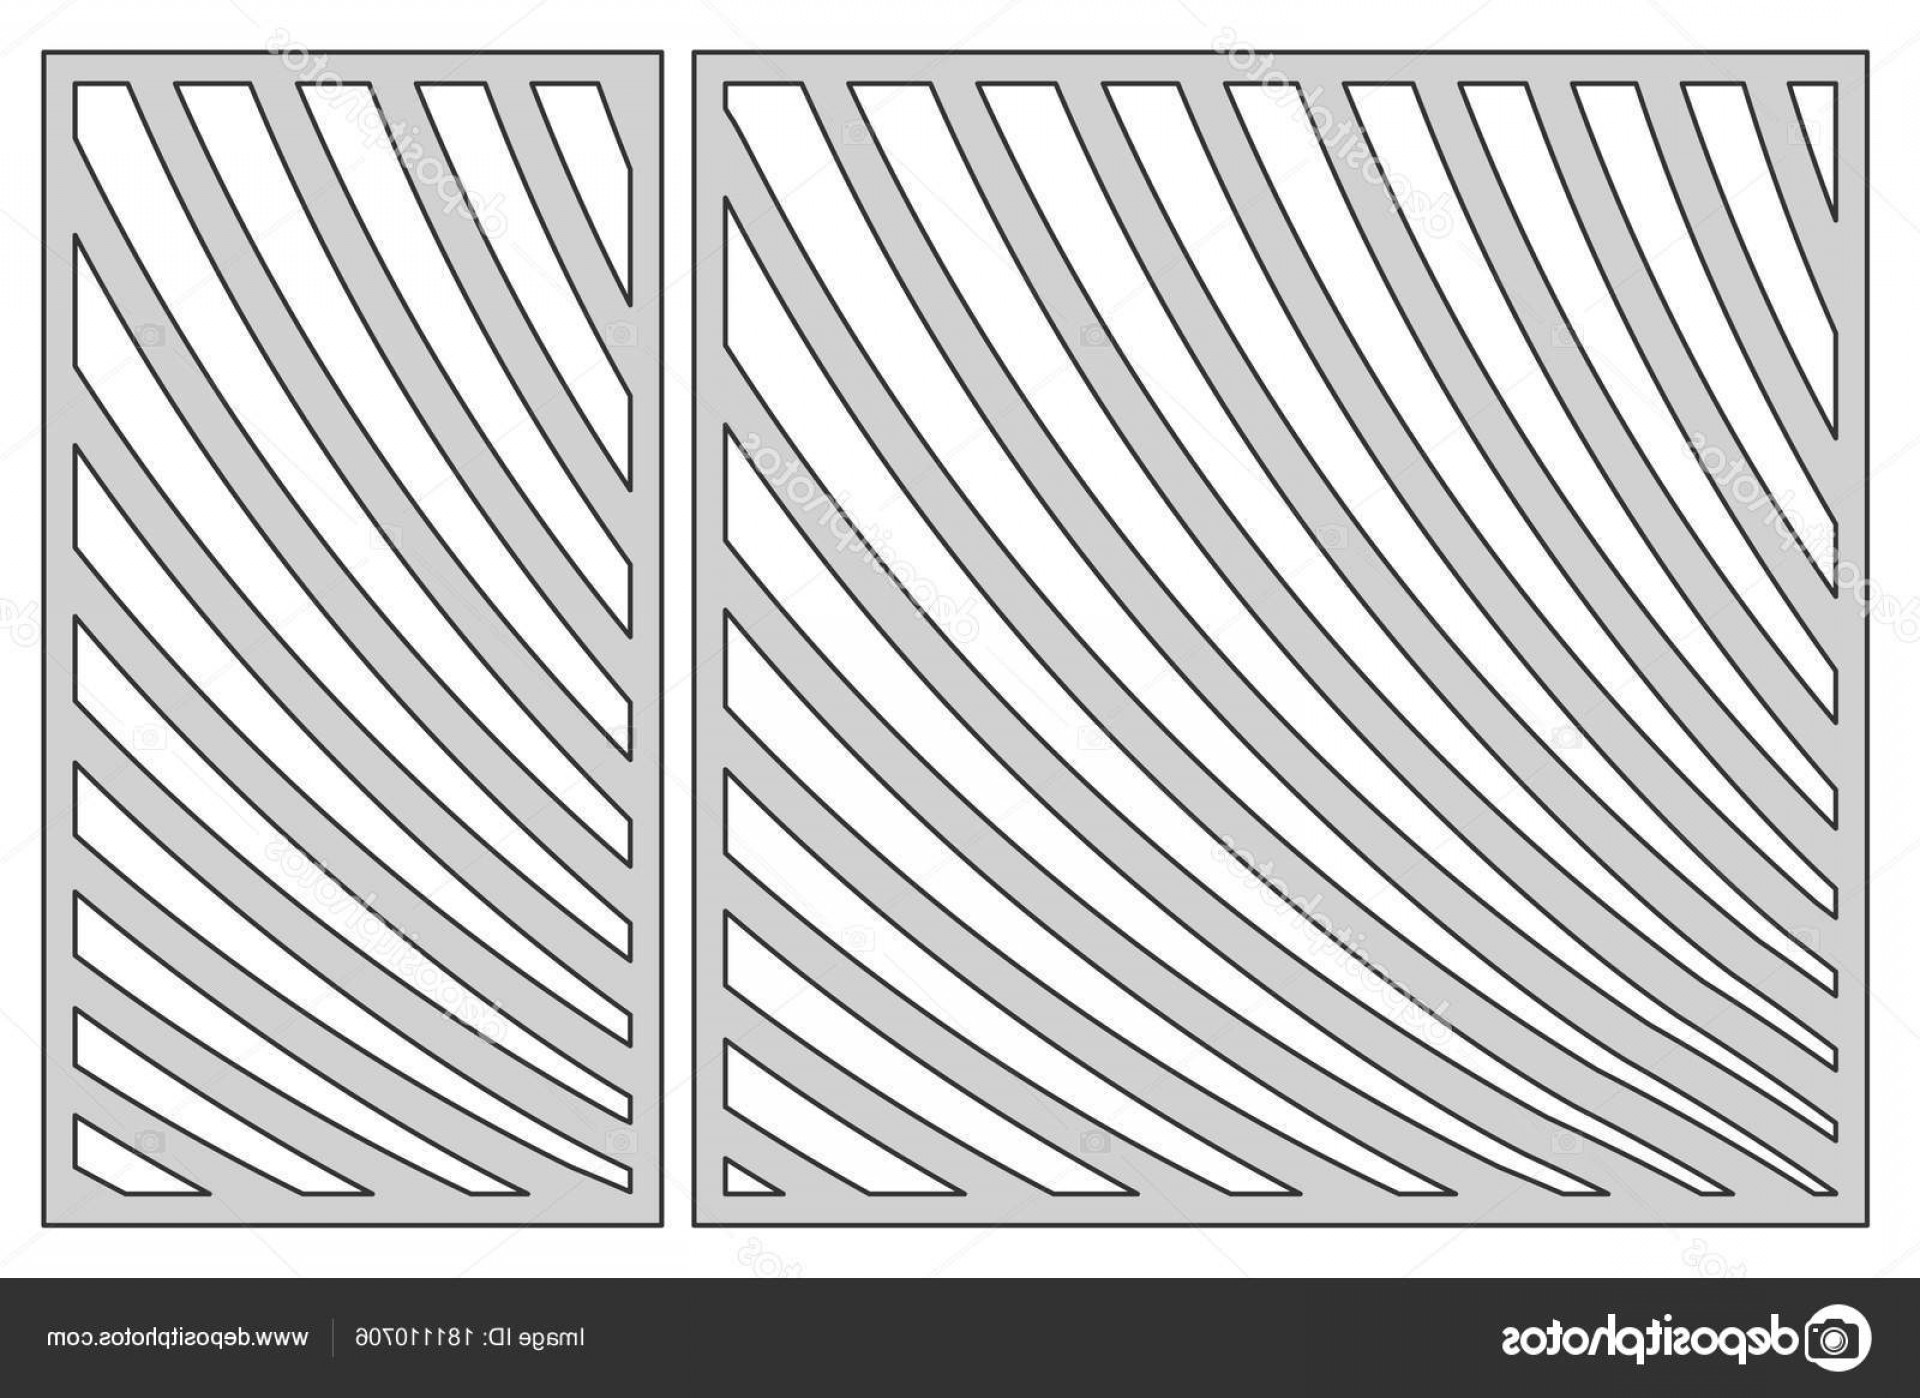 1-1 Vector: Stock Illustration Template For Cutting Geometric Line